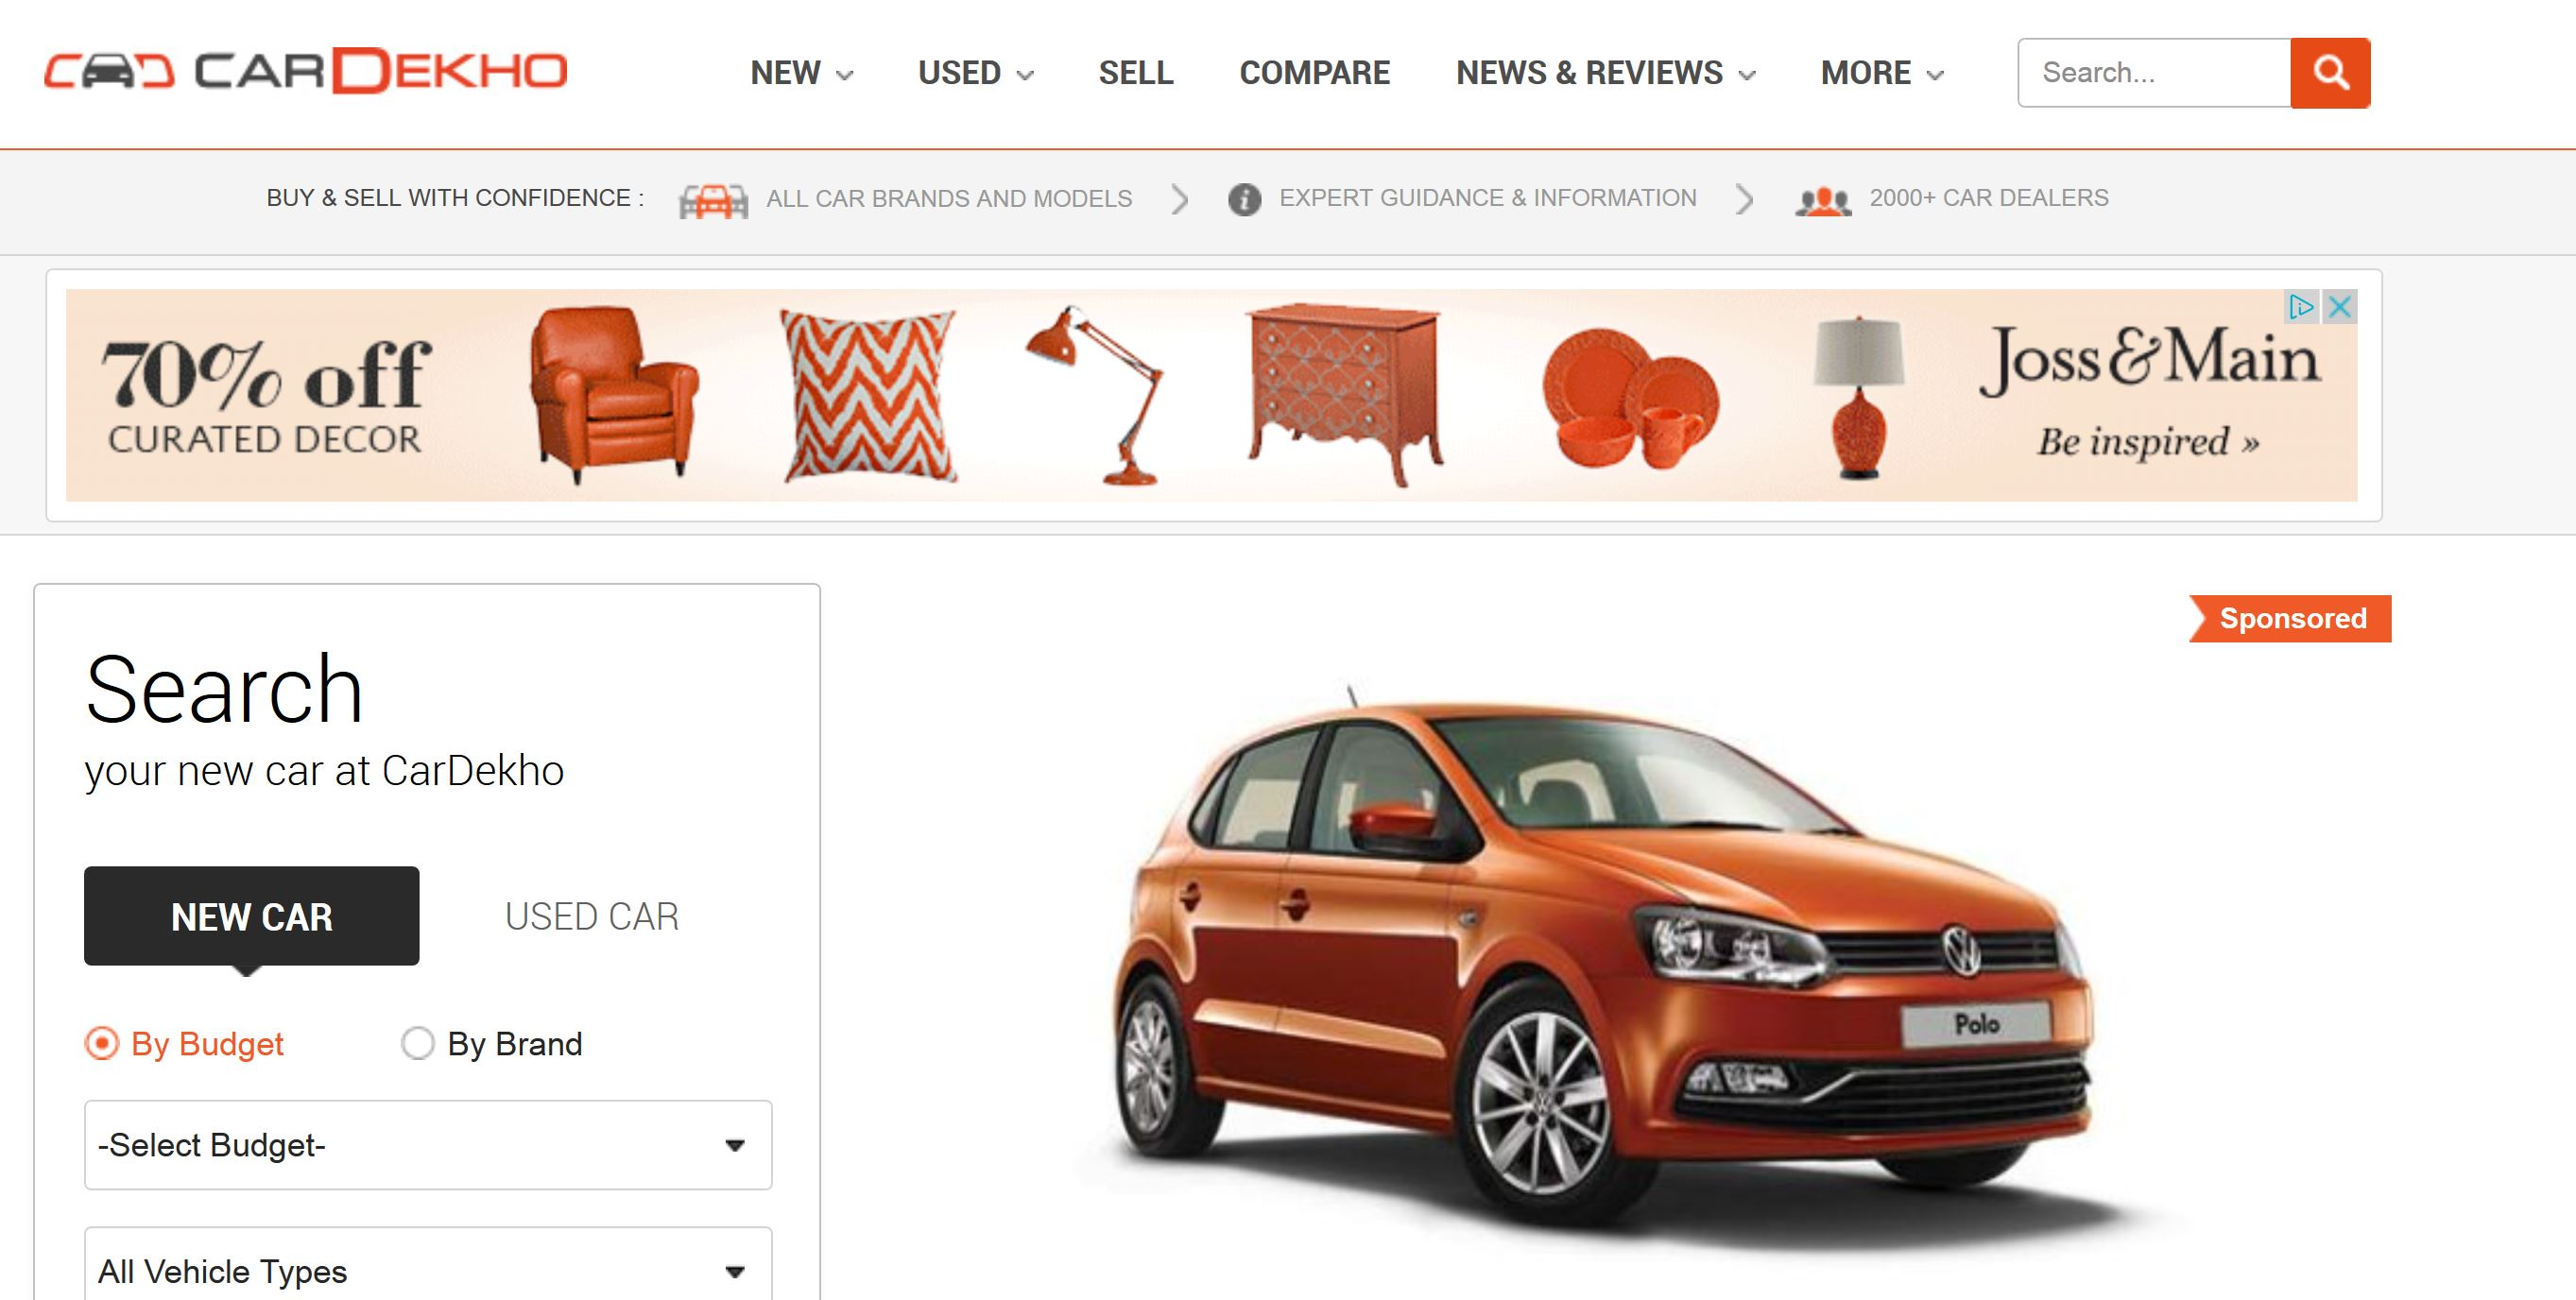 New And Used Car Reviews Comparisons And News Driving - HD2726×1376